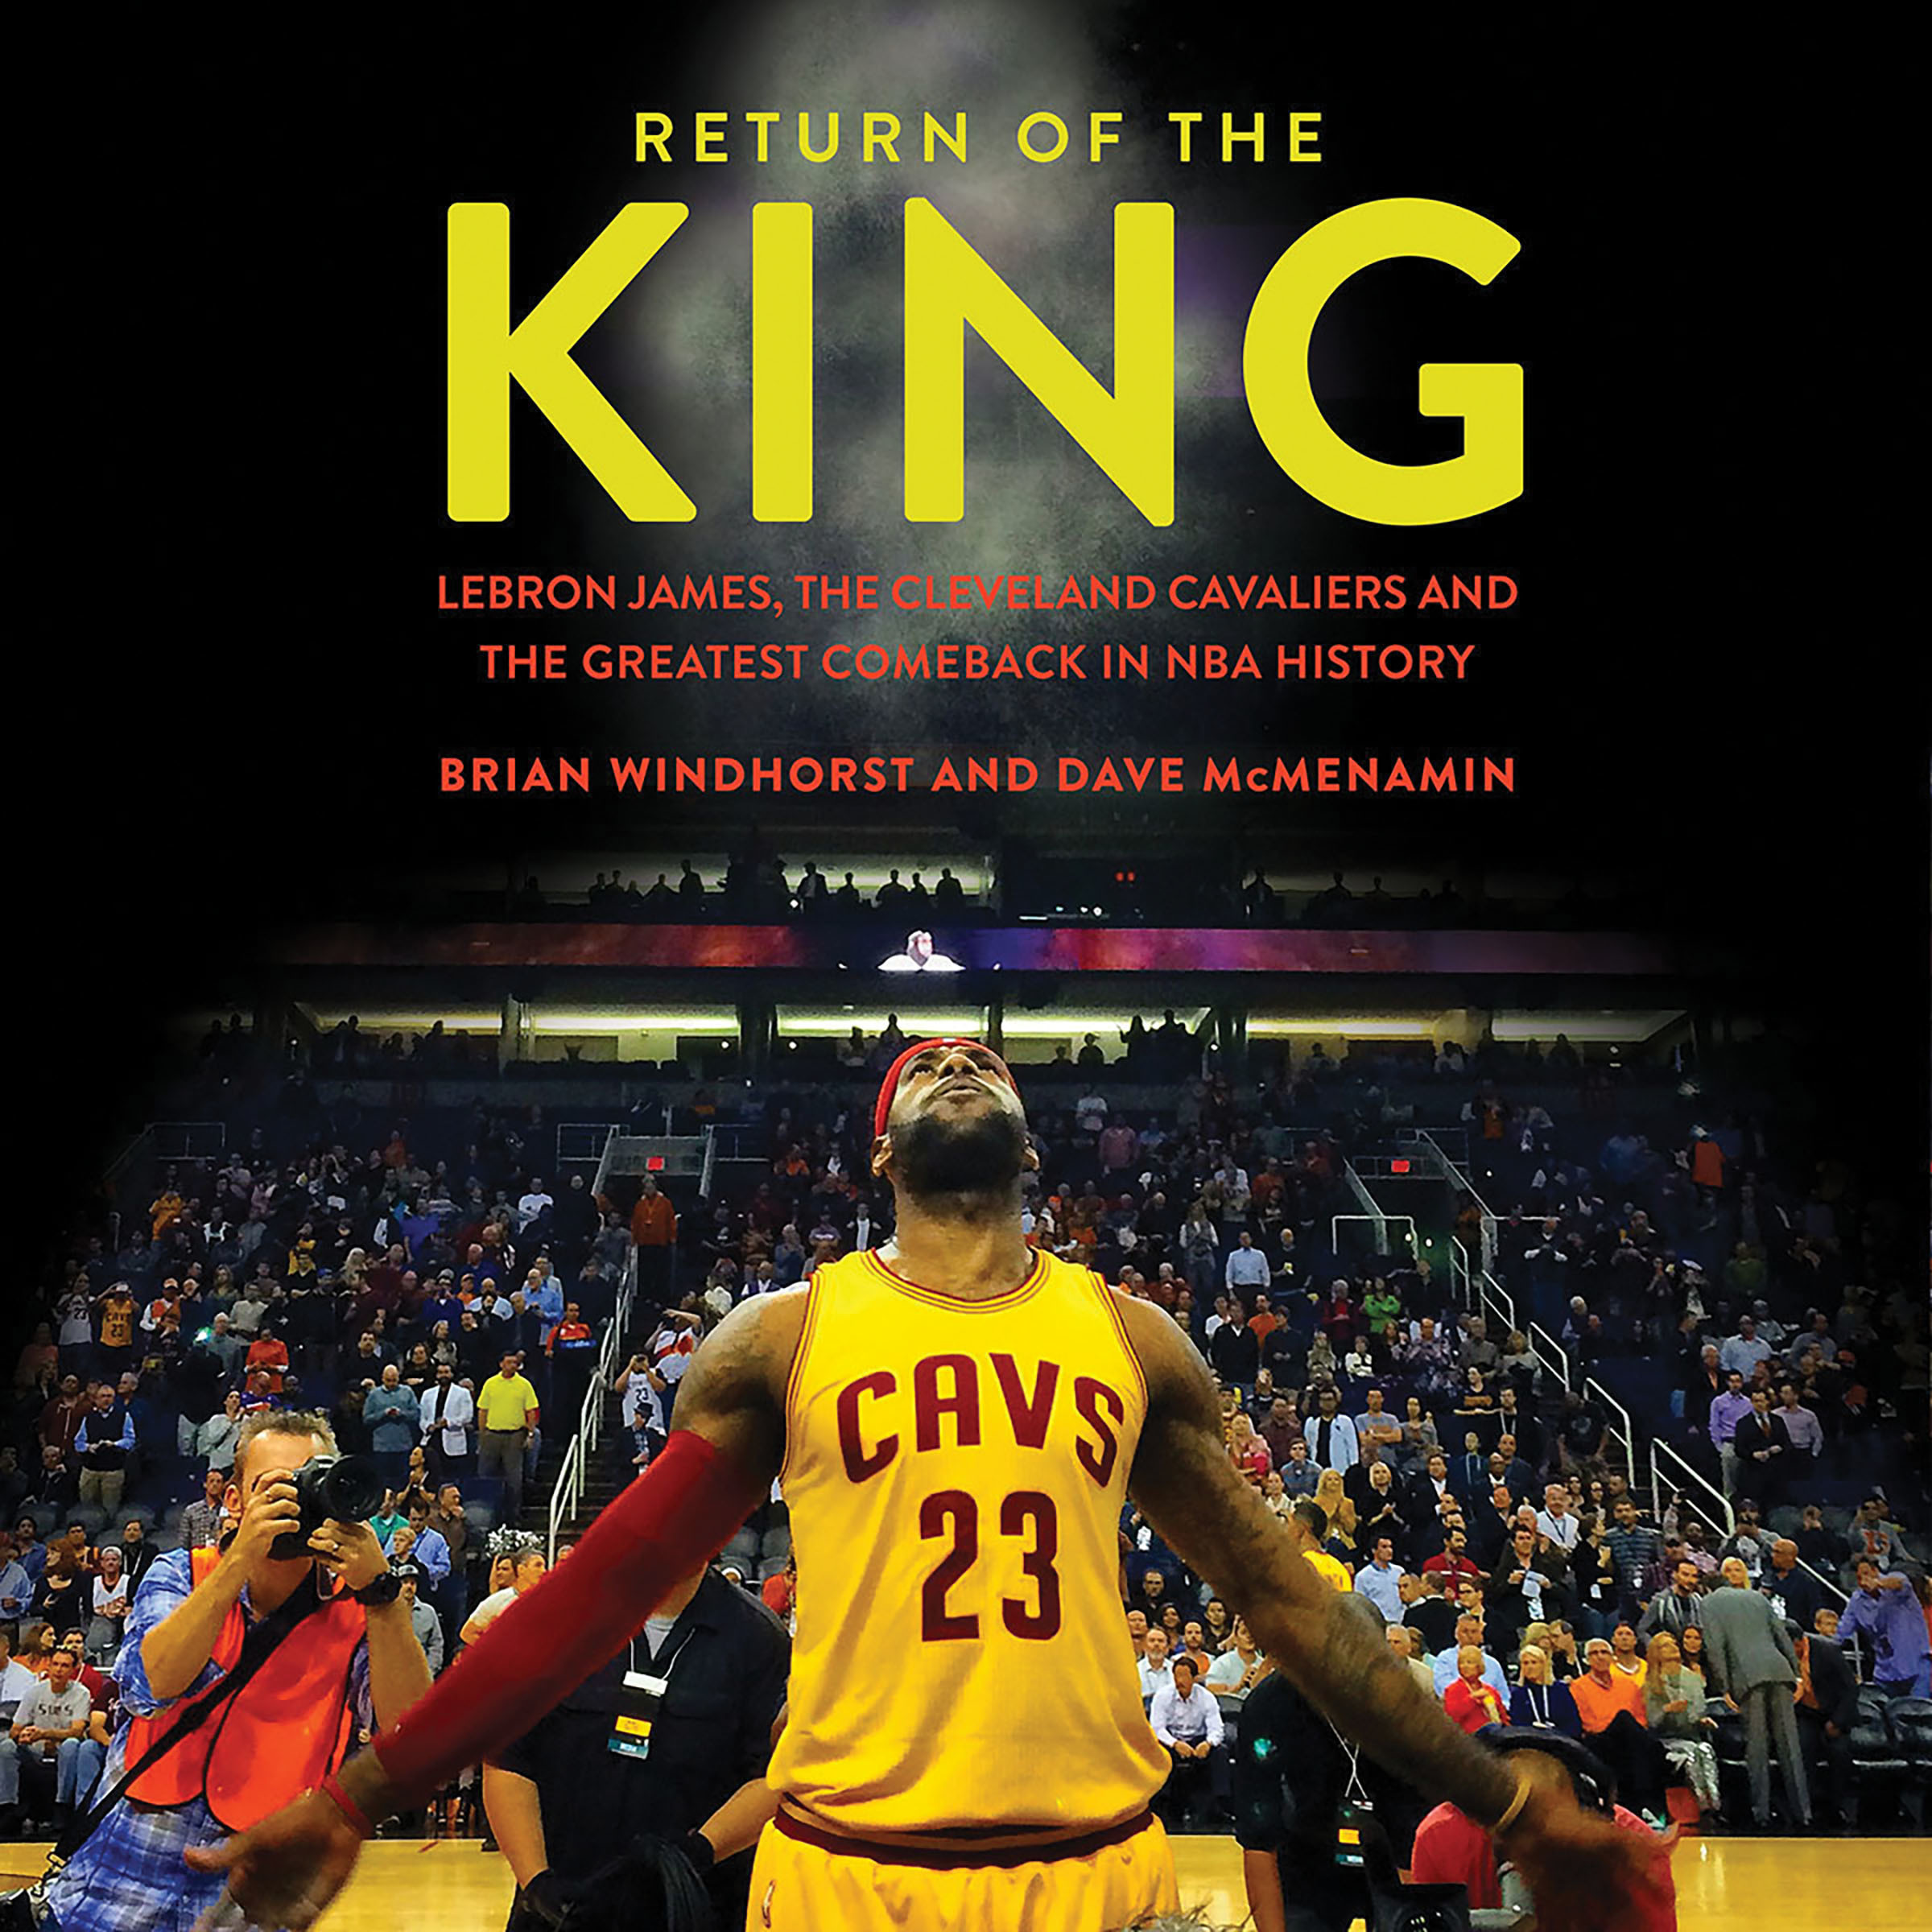 photograph relating to Cavs Printable Schedule called Return of the King: LeBron James, the Cleveland Cavaliers and the Most significant Comeback inside of NBA Heritage Audiobook